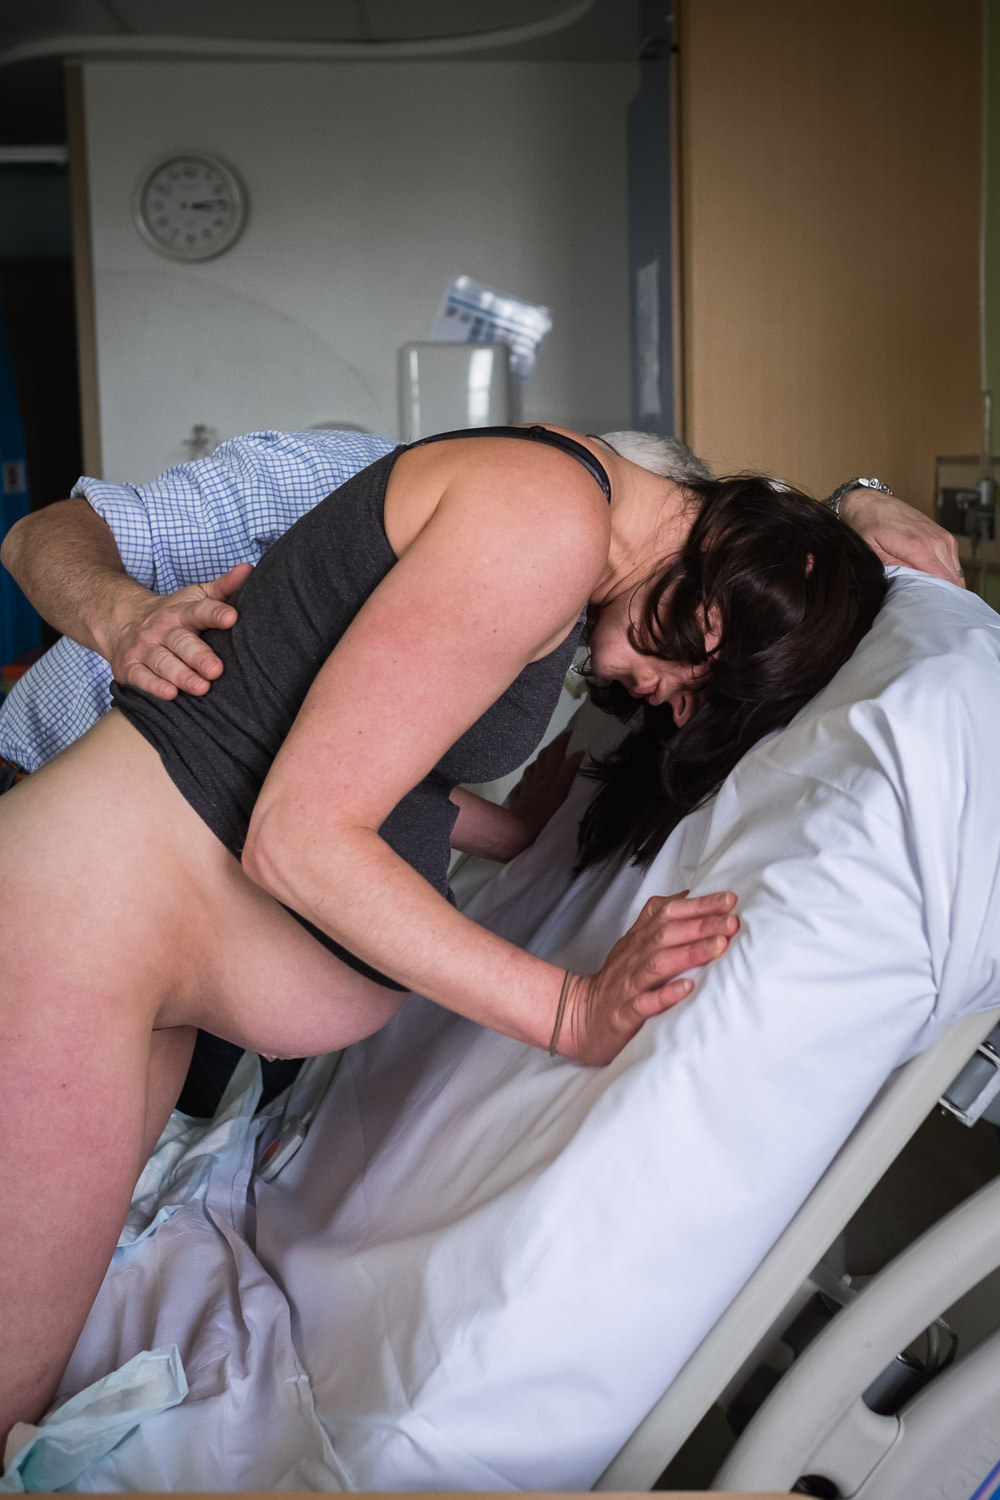 Labouring mother on her knees, leaning into the back of the hospital bed as she works through a contraction.